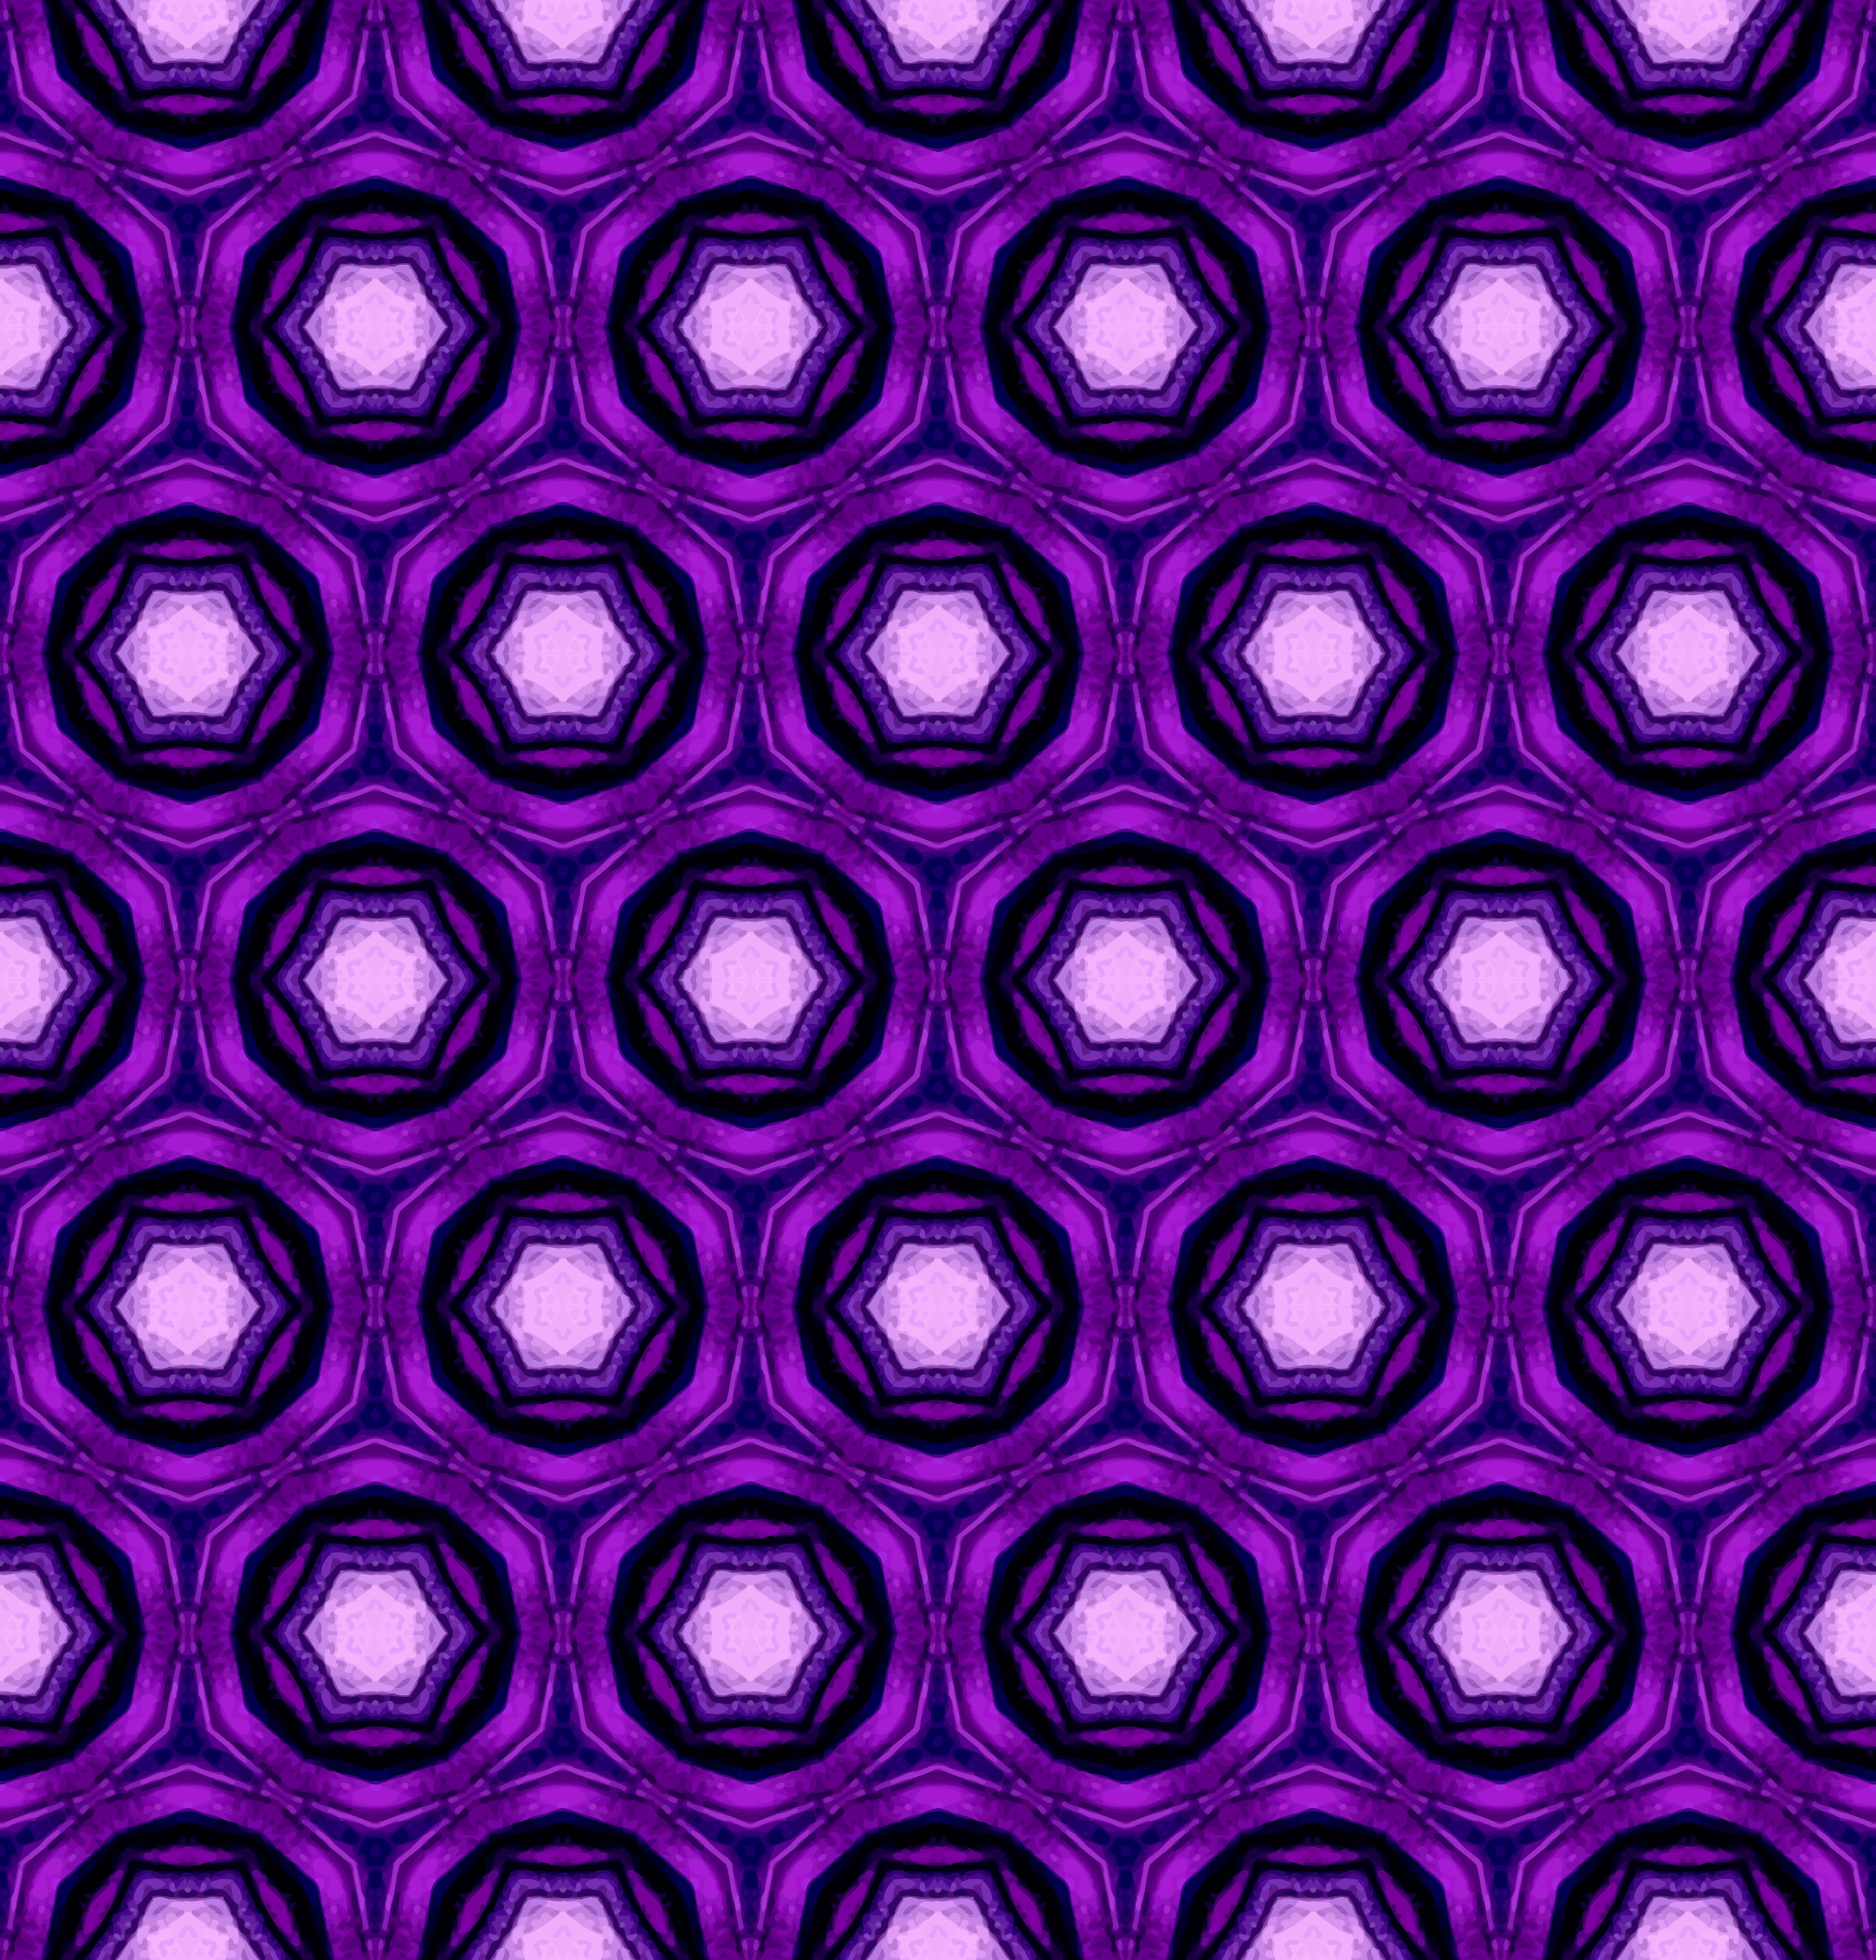 Background pattern 160 (colour 3) by Firkin